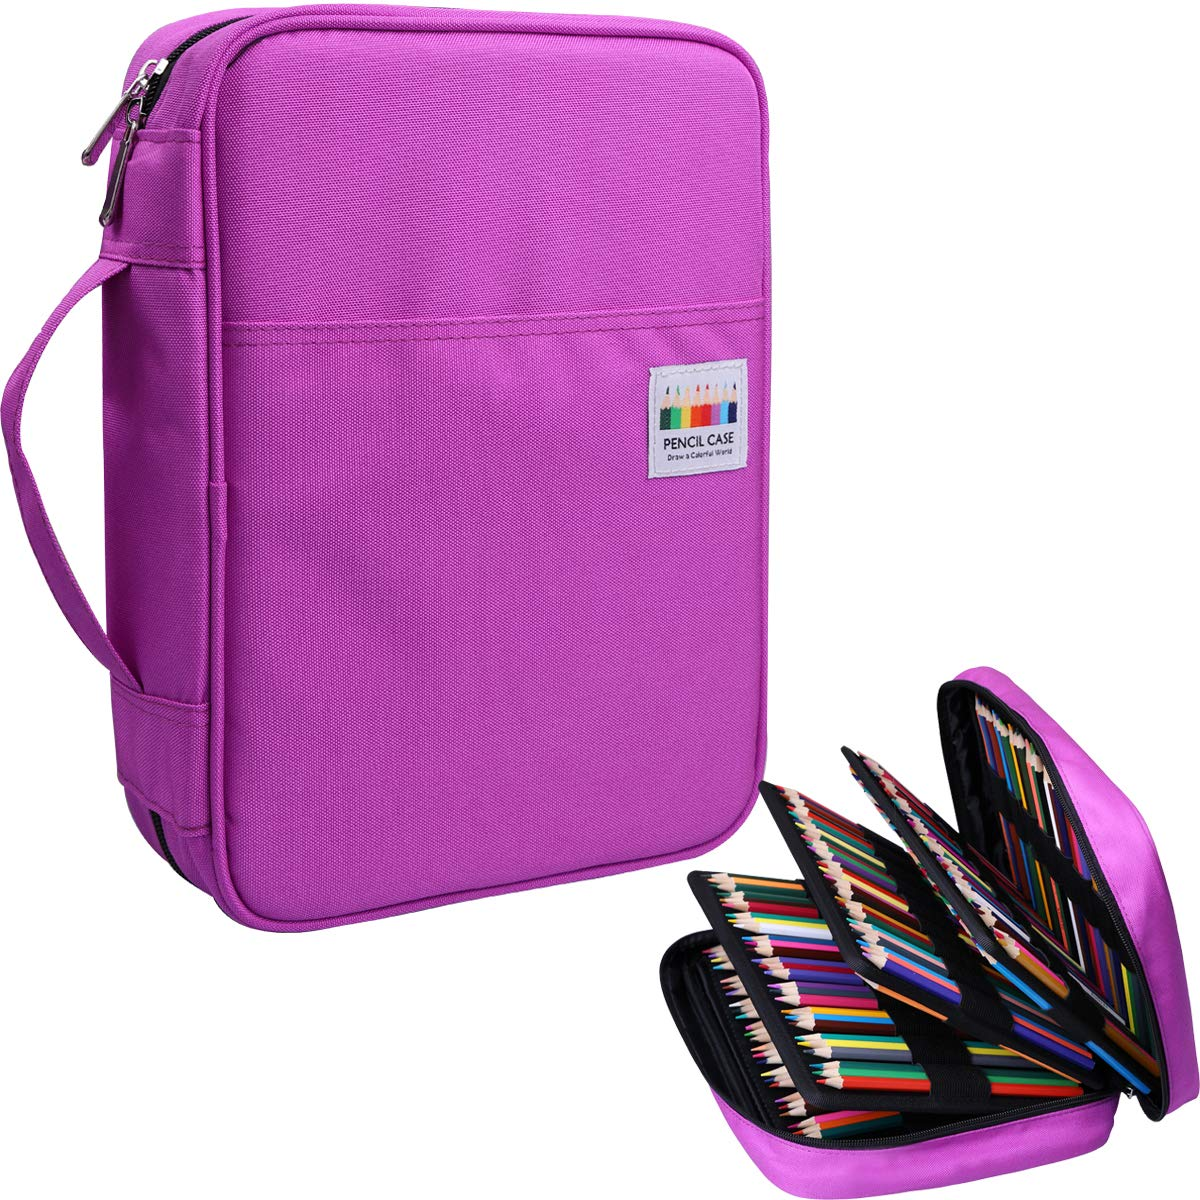 220 Colored Pencil Case Multi Pencil Holder Large Capacity Pen Organizer Bag for Watercolor Pencils, Markers,Gel Pens, Highlighters, Brushes, Great Gift for Students Painter Writers (Purple)